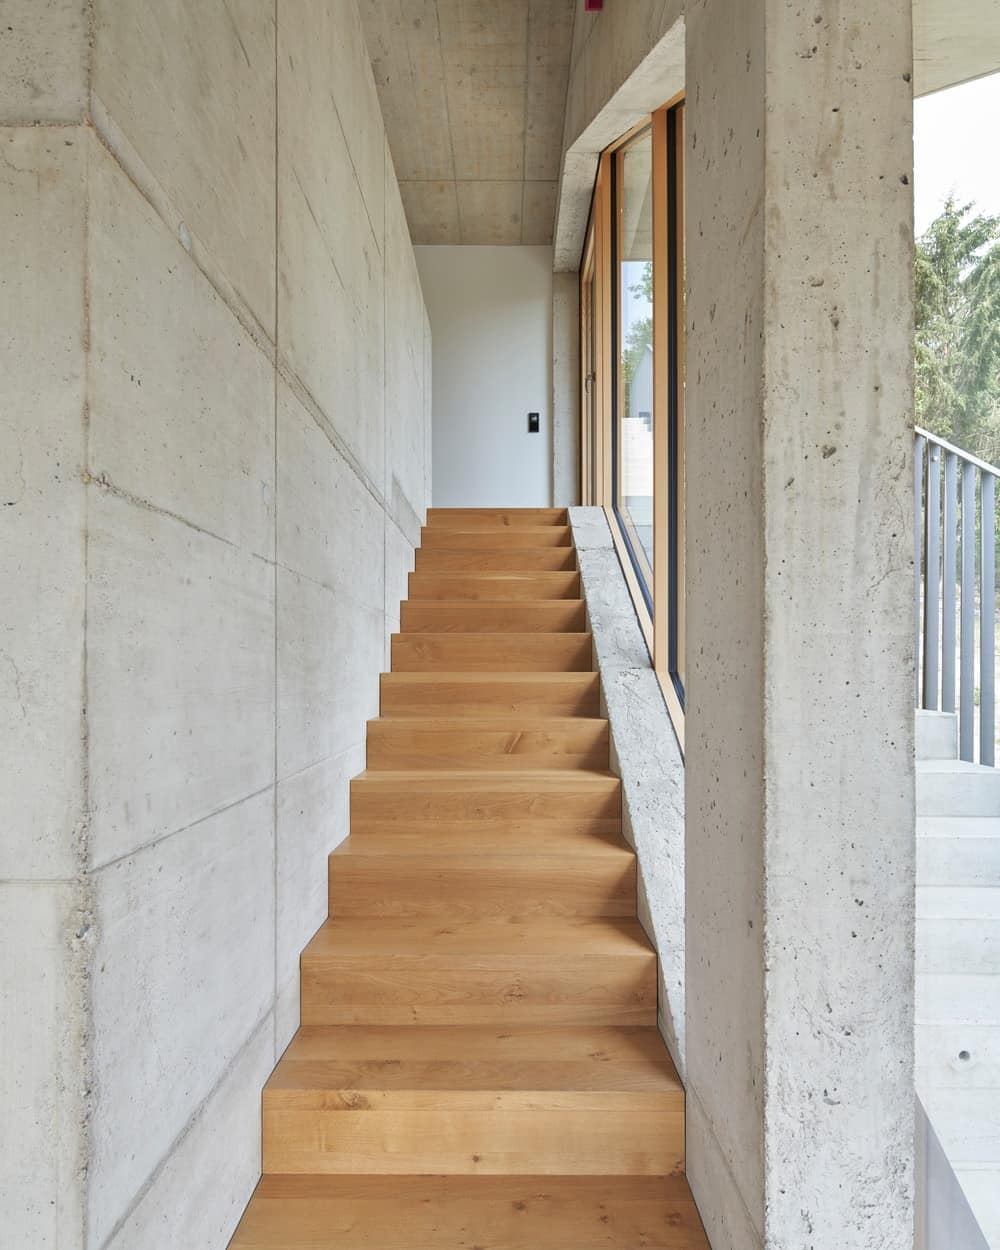 This is a view of the interior staircase with wood toned steps to match the hardwood flooring brightened by the glass walls.